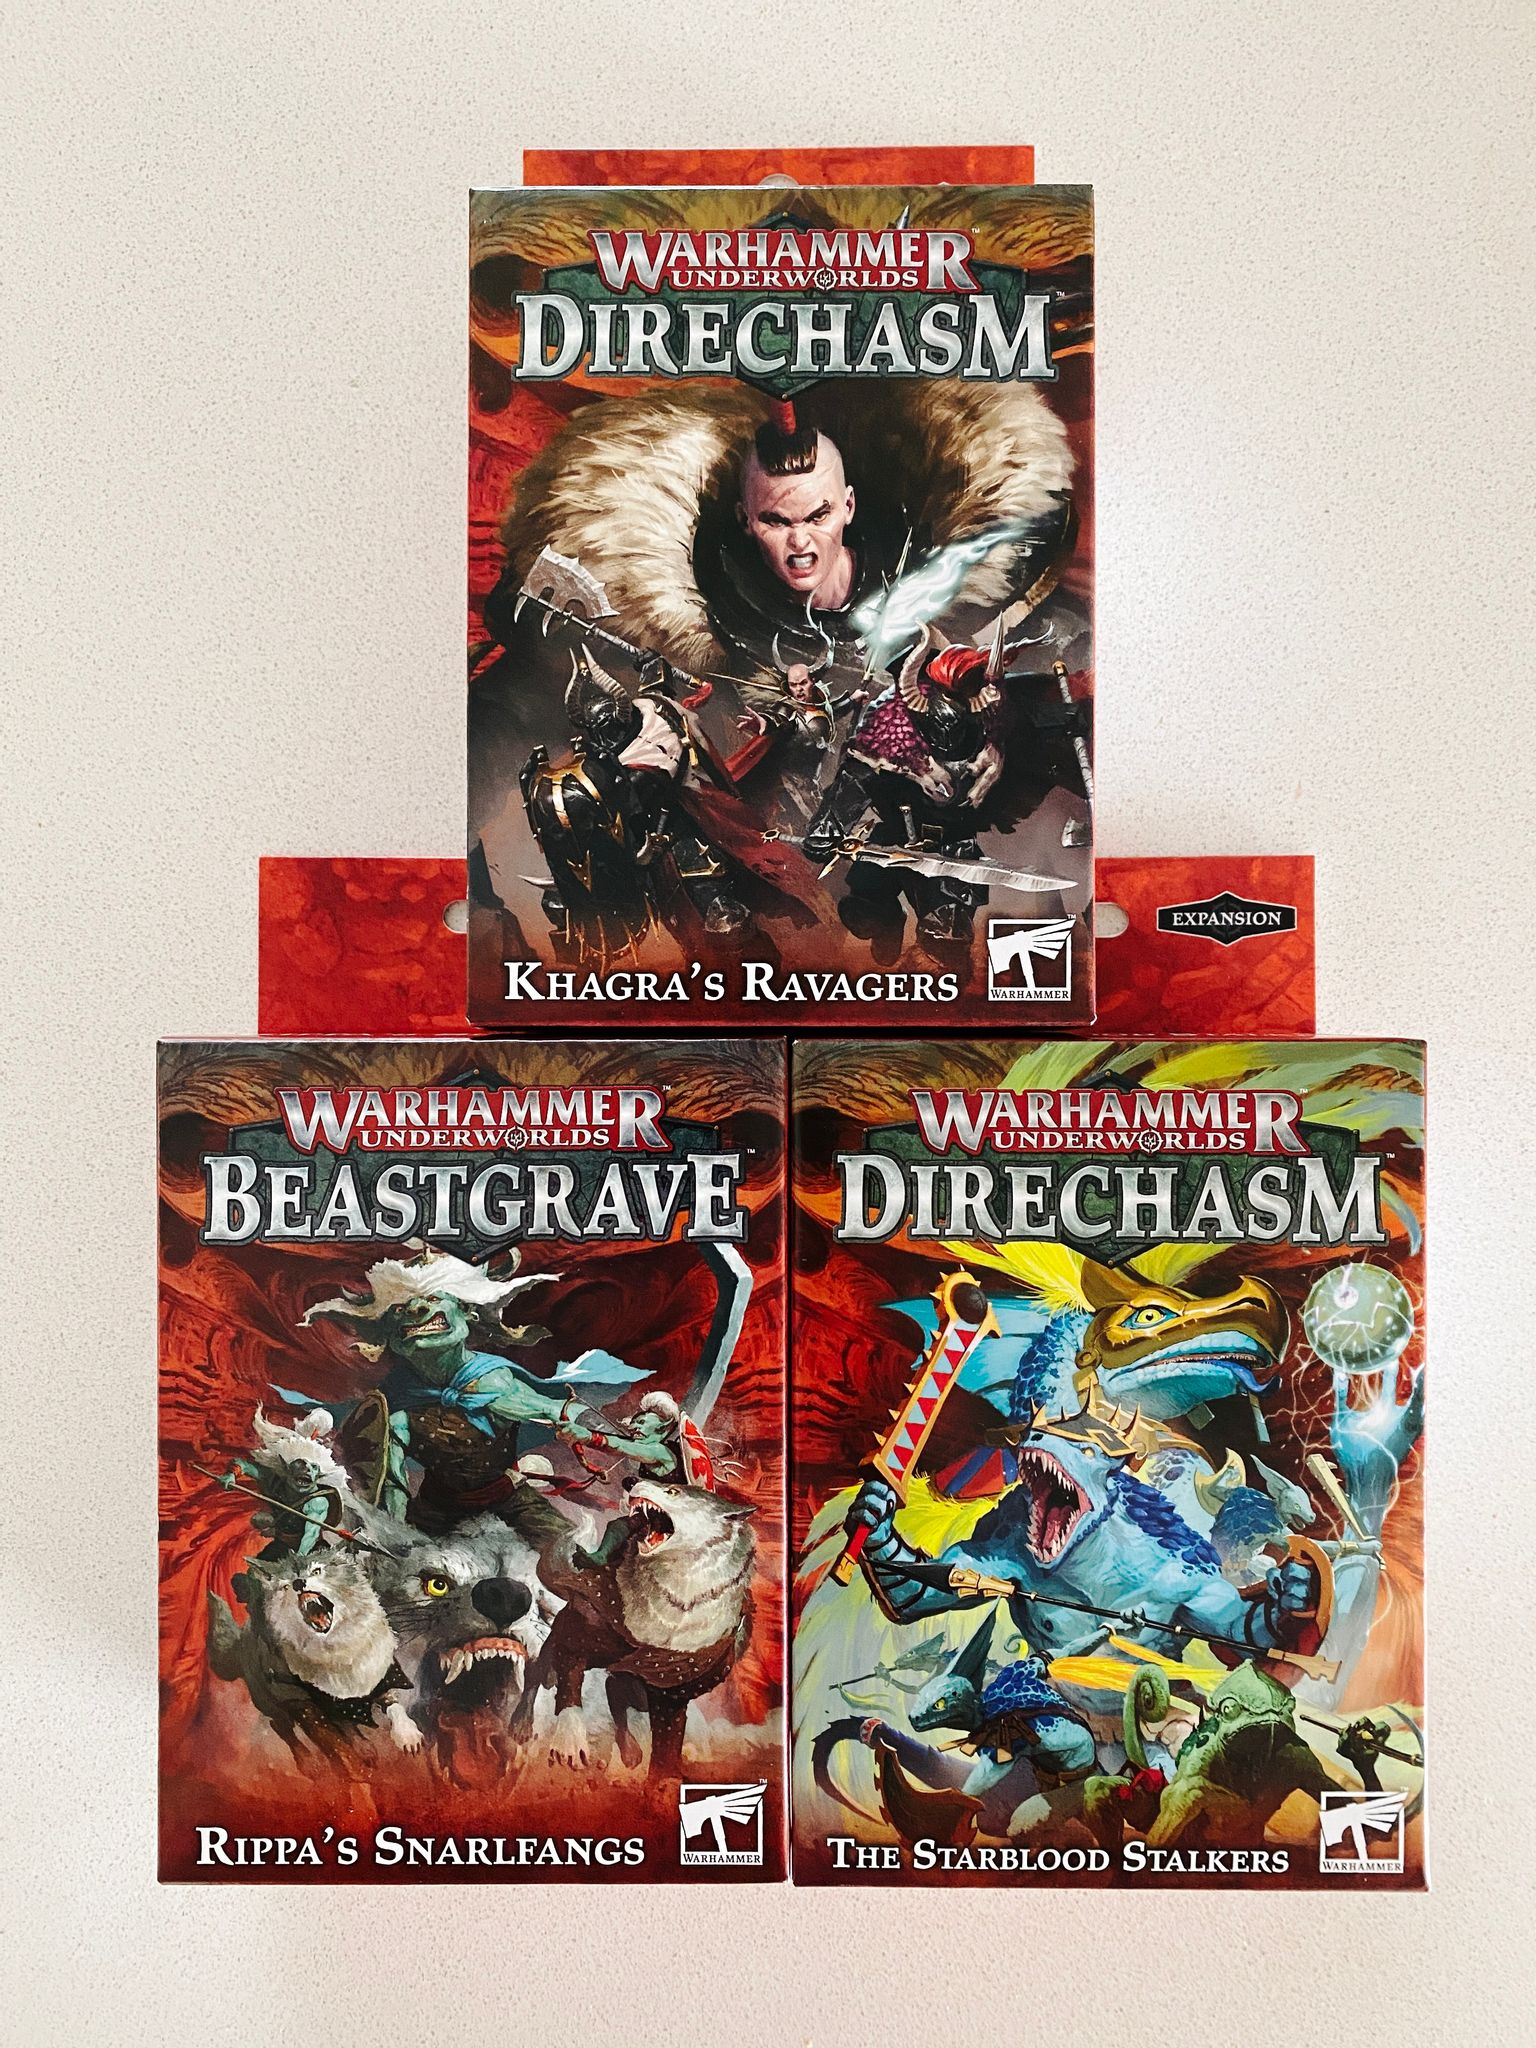 A photo of the boxes of three warbands from Warhammer Underworlds: Khagra's Ravagers (Chaos warriors), Rippa's Snarlfangs (goblins on wolfback), and the Starblood Stalkers (Aztec-feeling lizards).